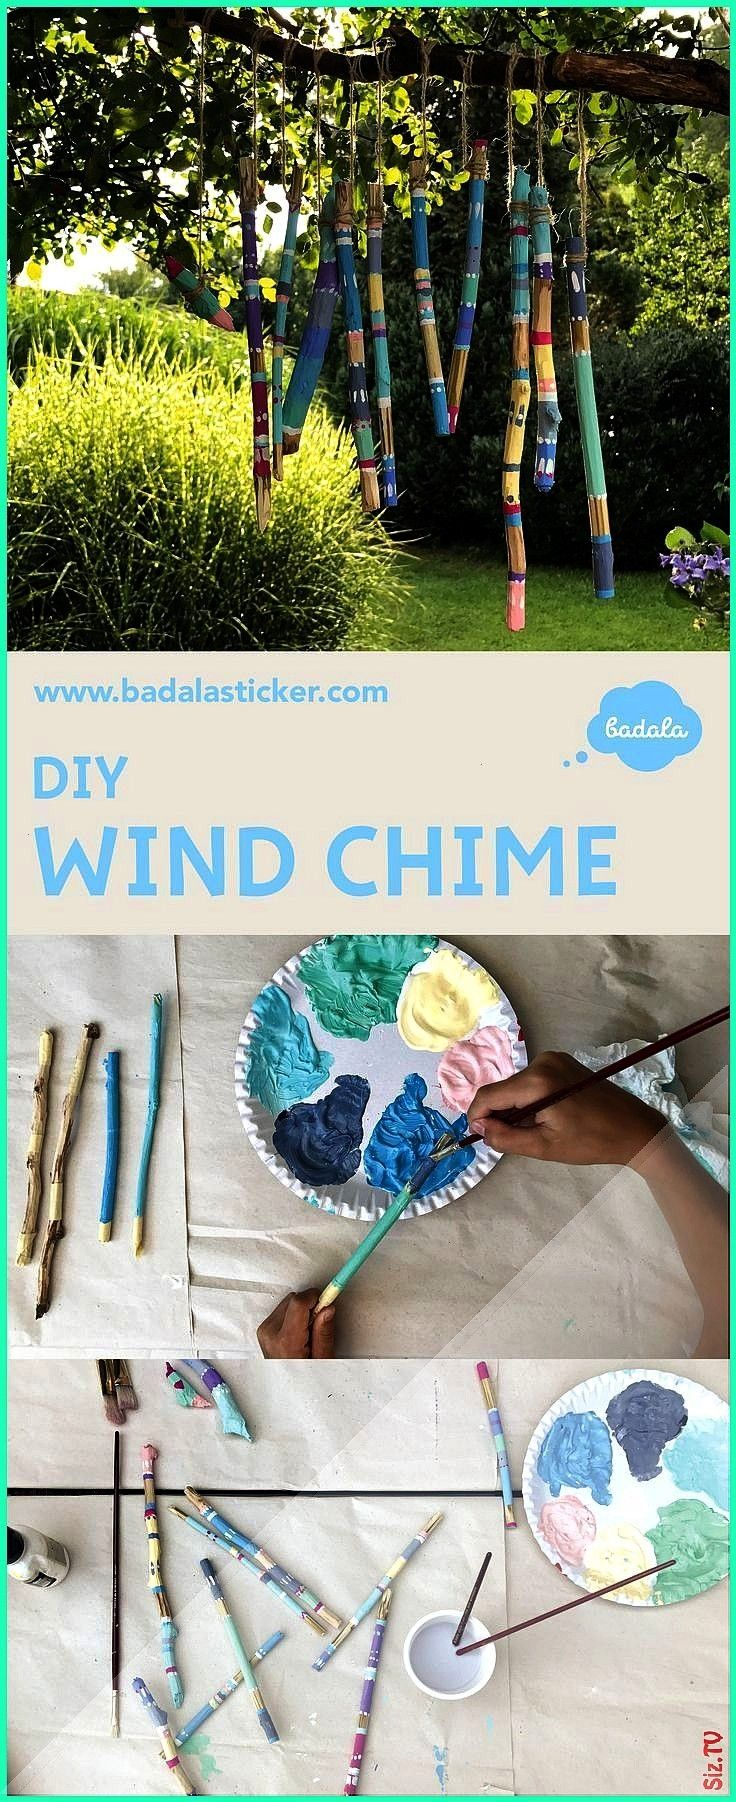 wind chime enjoy the time when your kids are busy with it Wind chime from wooden sticks that wood surfaces remain free wrap the s An easy wind chime enjoy the time when y...